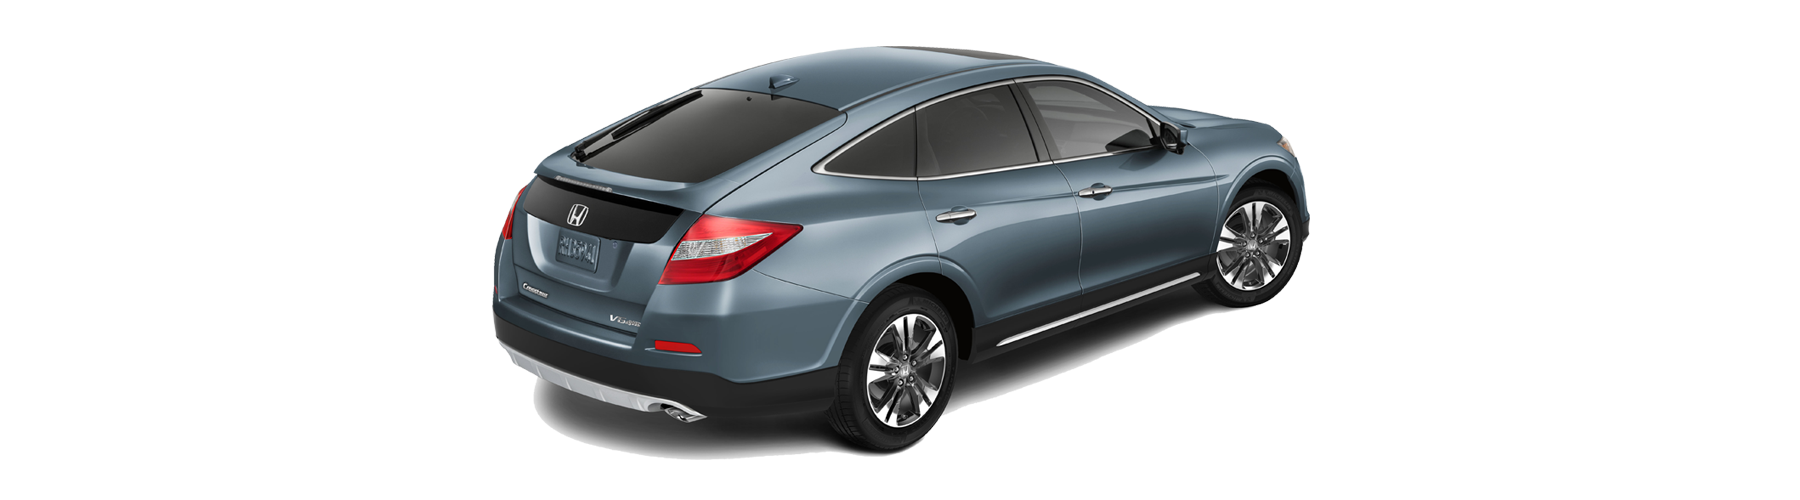 2015 Crosstour New England Honda Dealers